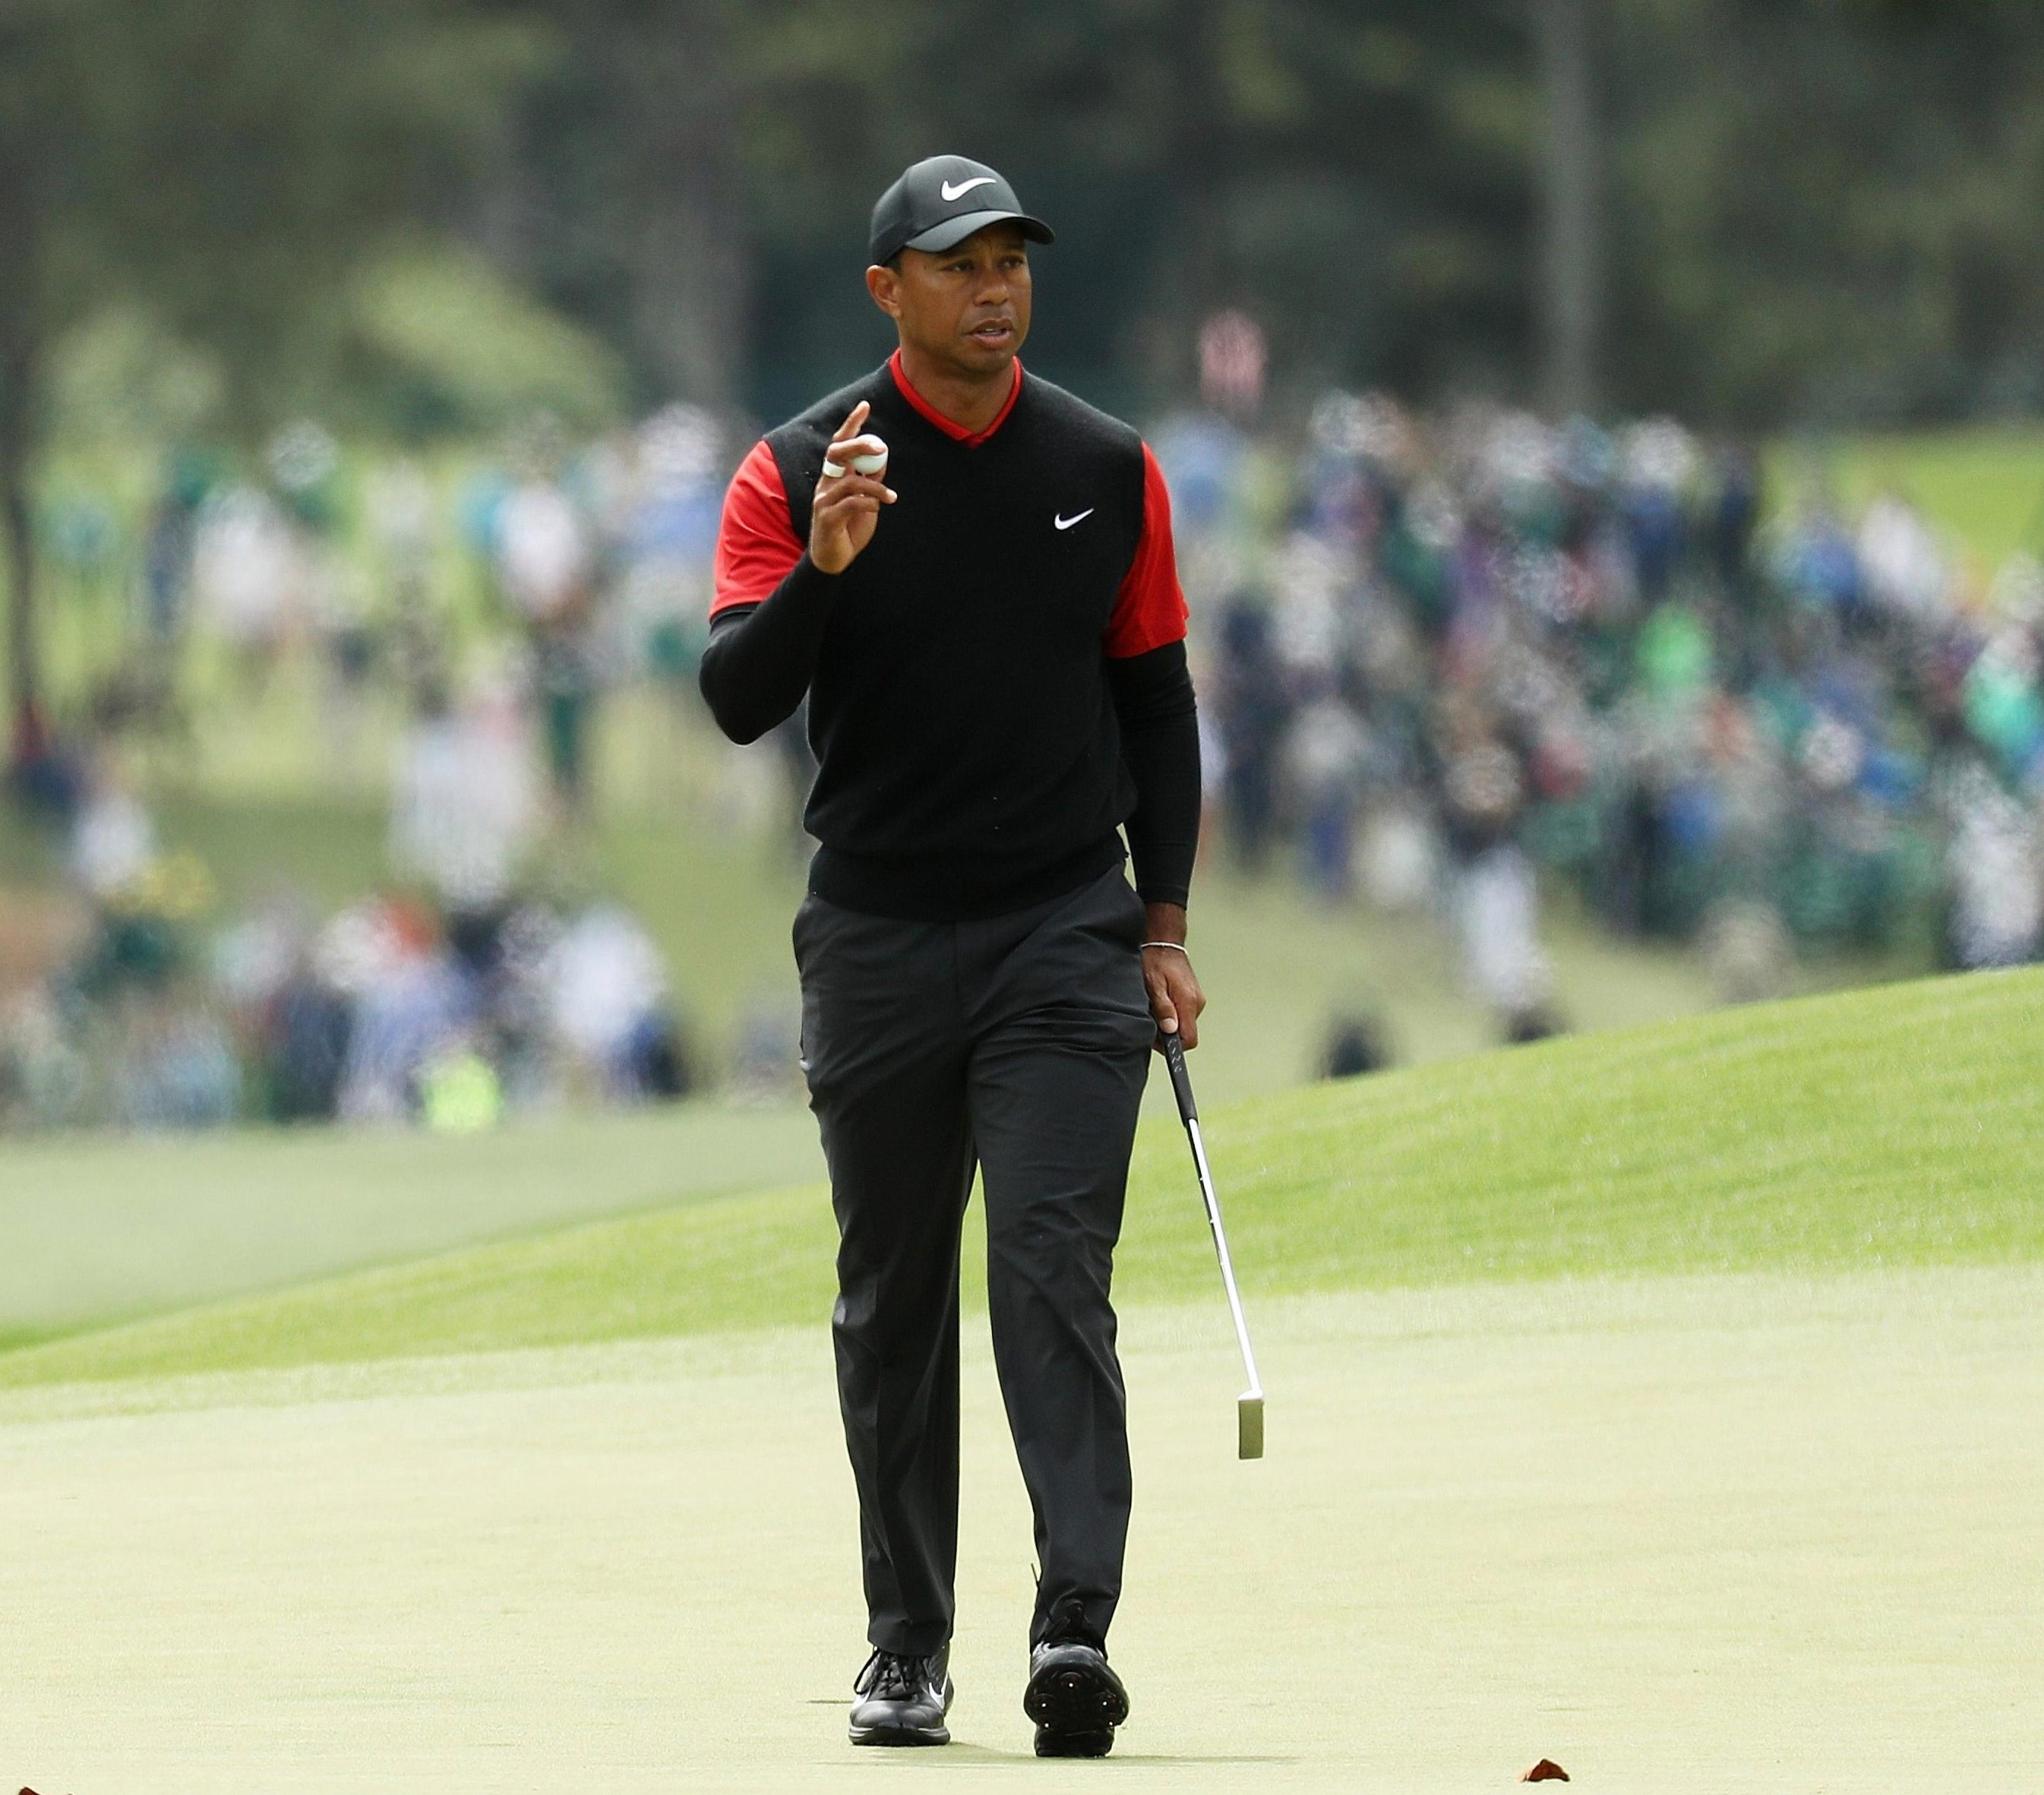 The former world No 1 fired his lowest round of the week on Sunday